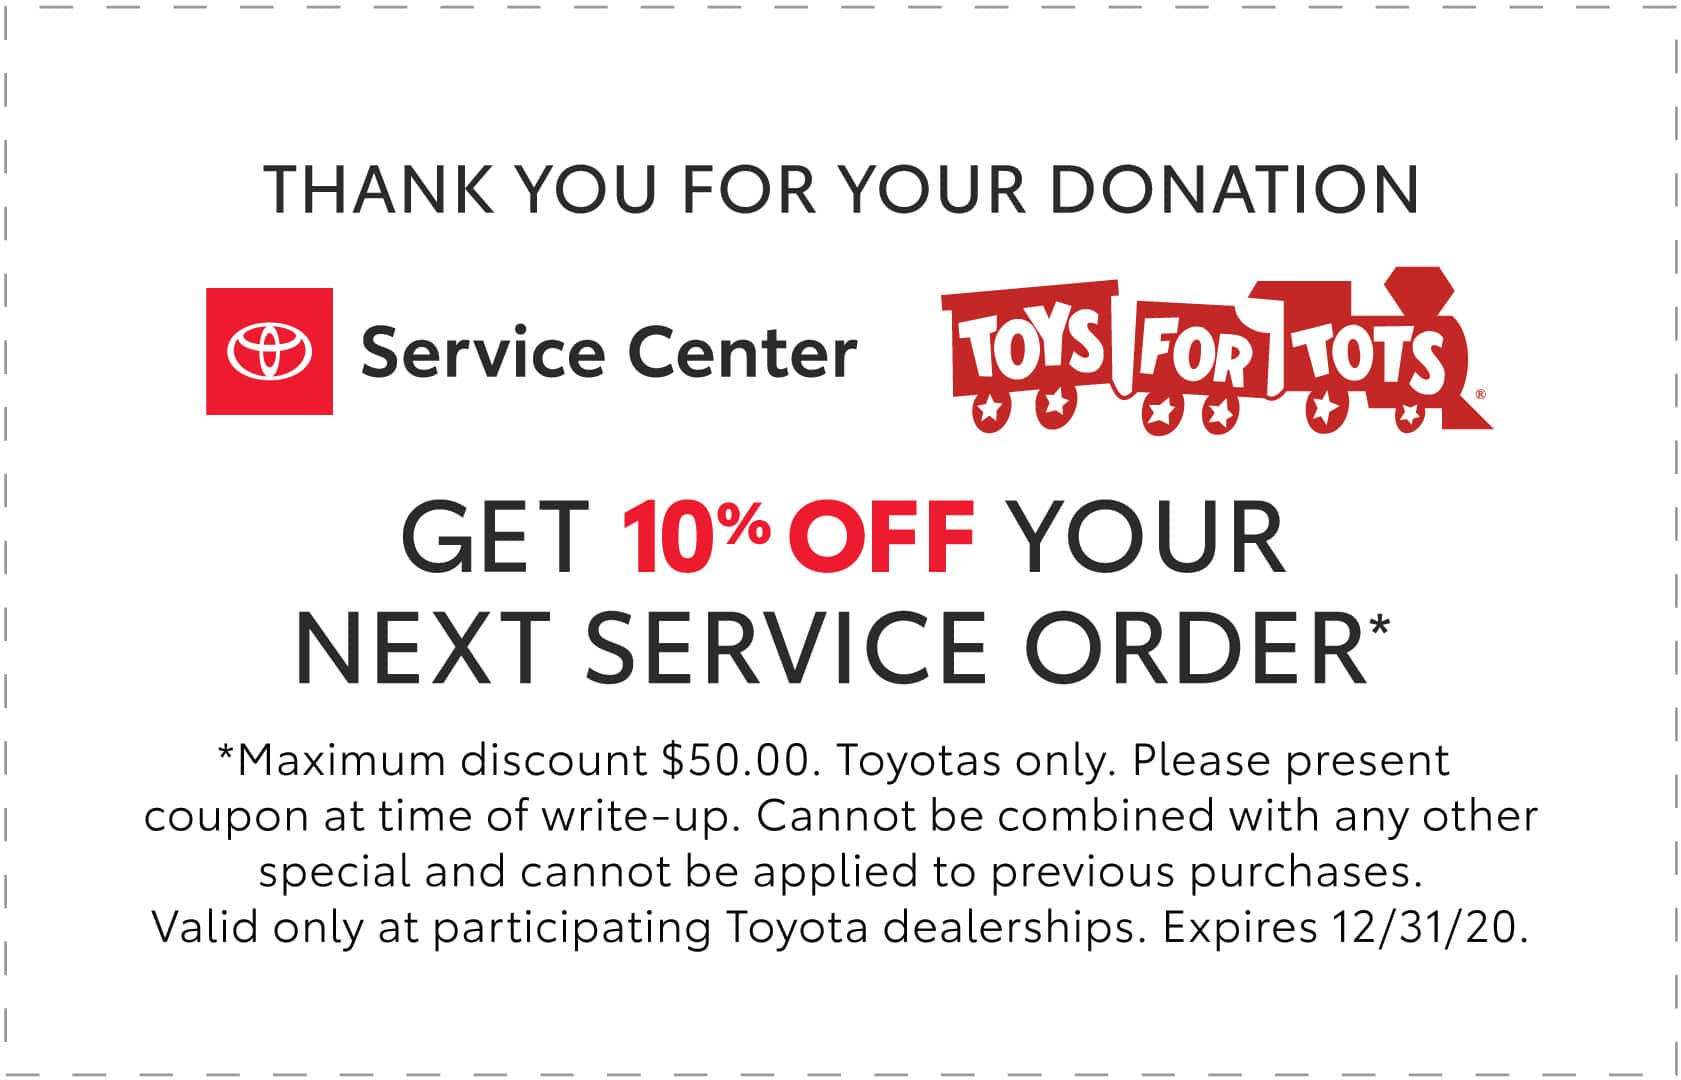 10% off Service at Toyota Dealership when You Donate Toy YMMV